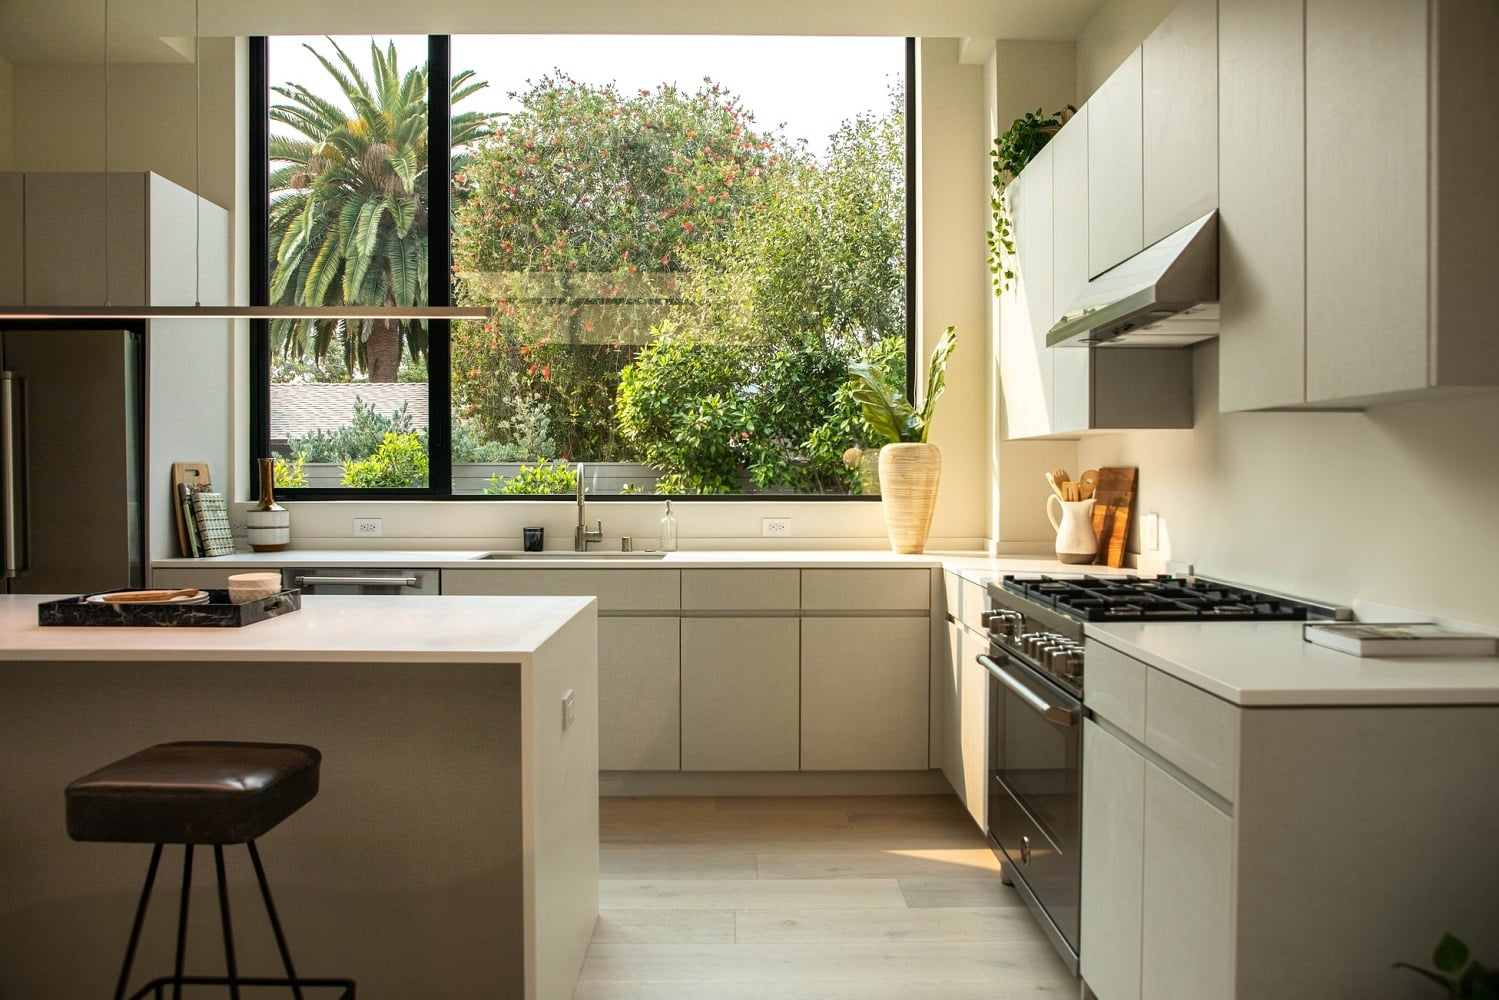 Kitchen layouts 101 all you need to know 3